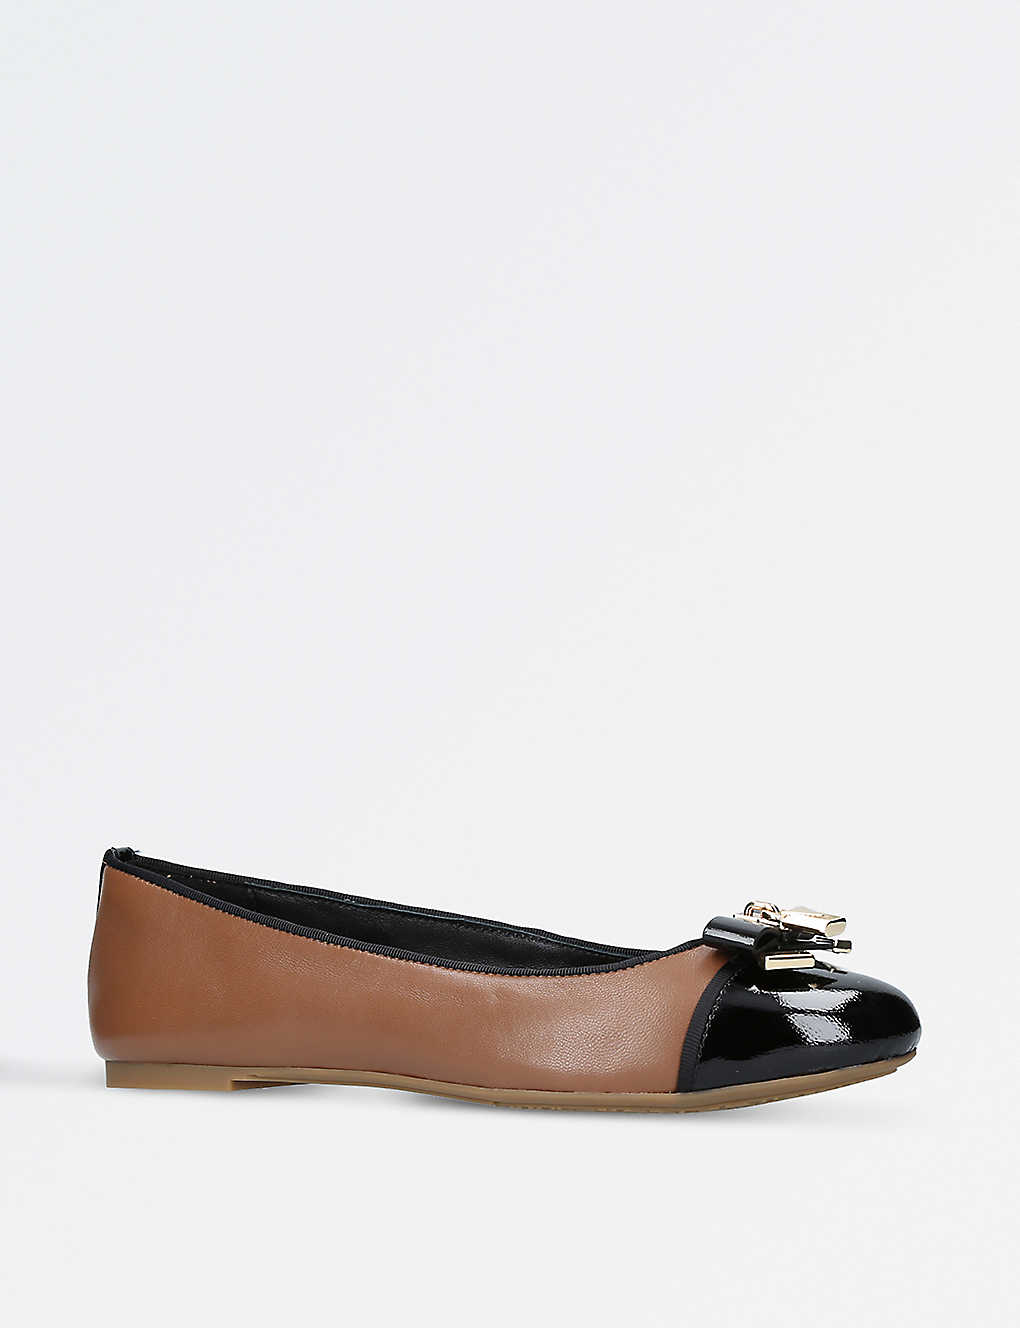 7418ee45798 MICHAEL MICHAEL KORS - Alice two-tone leather ballet shoes ...